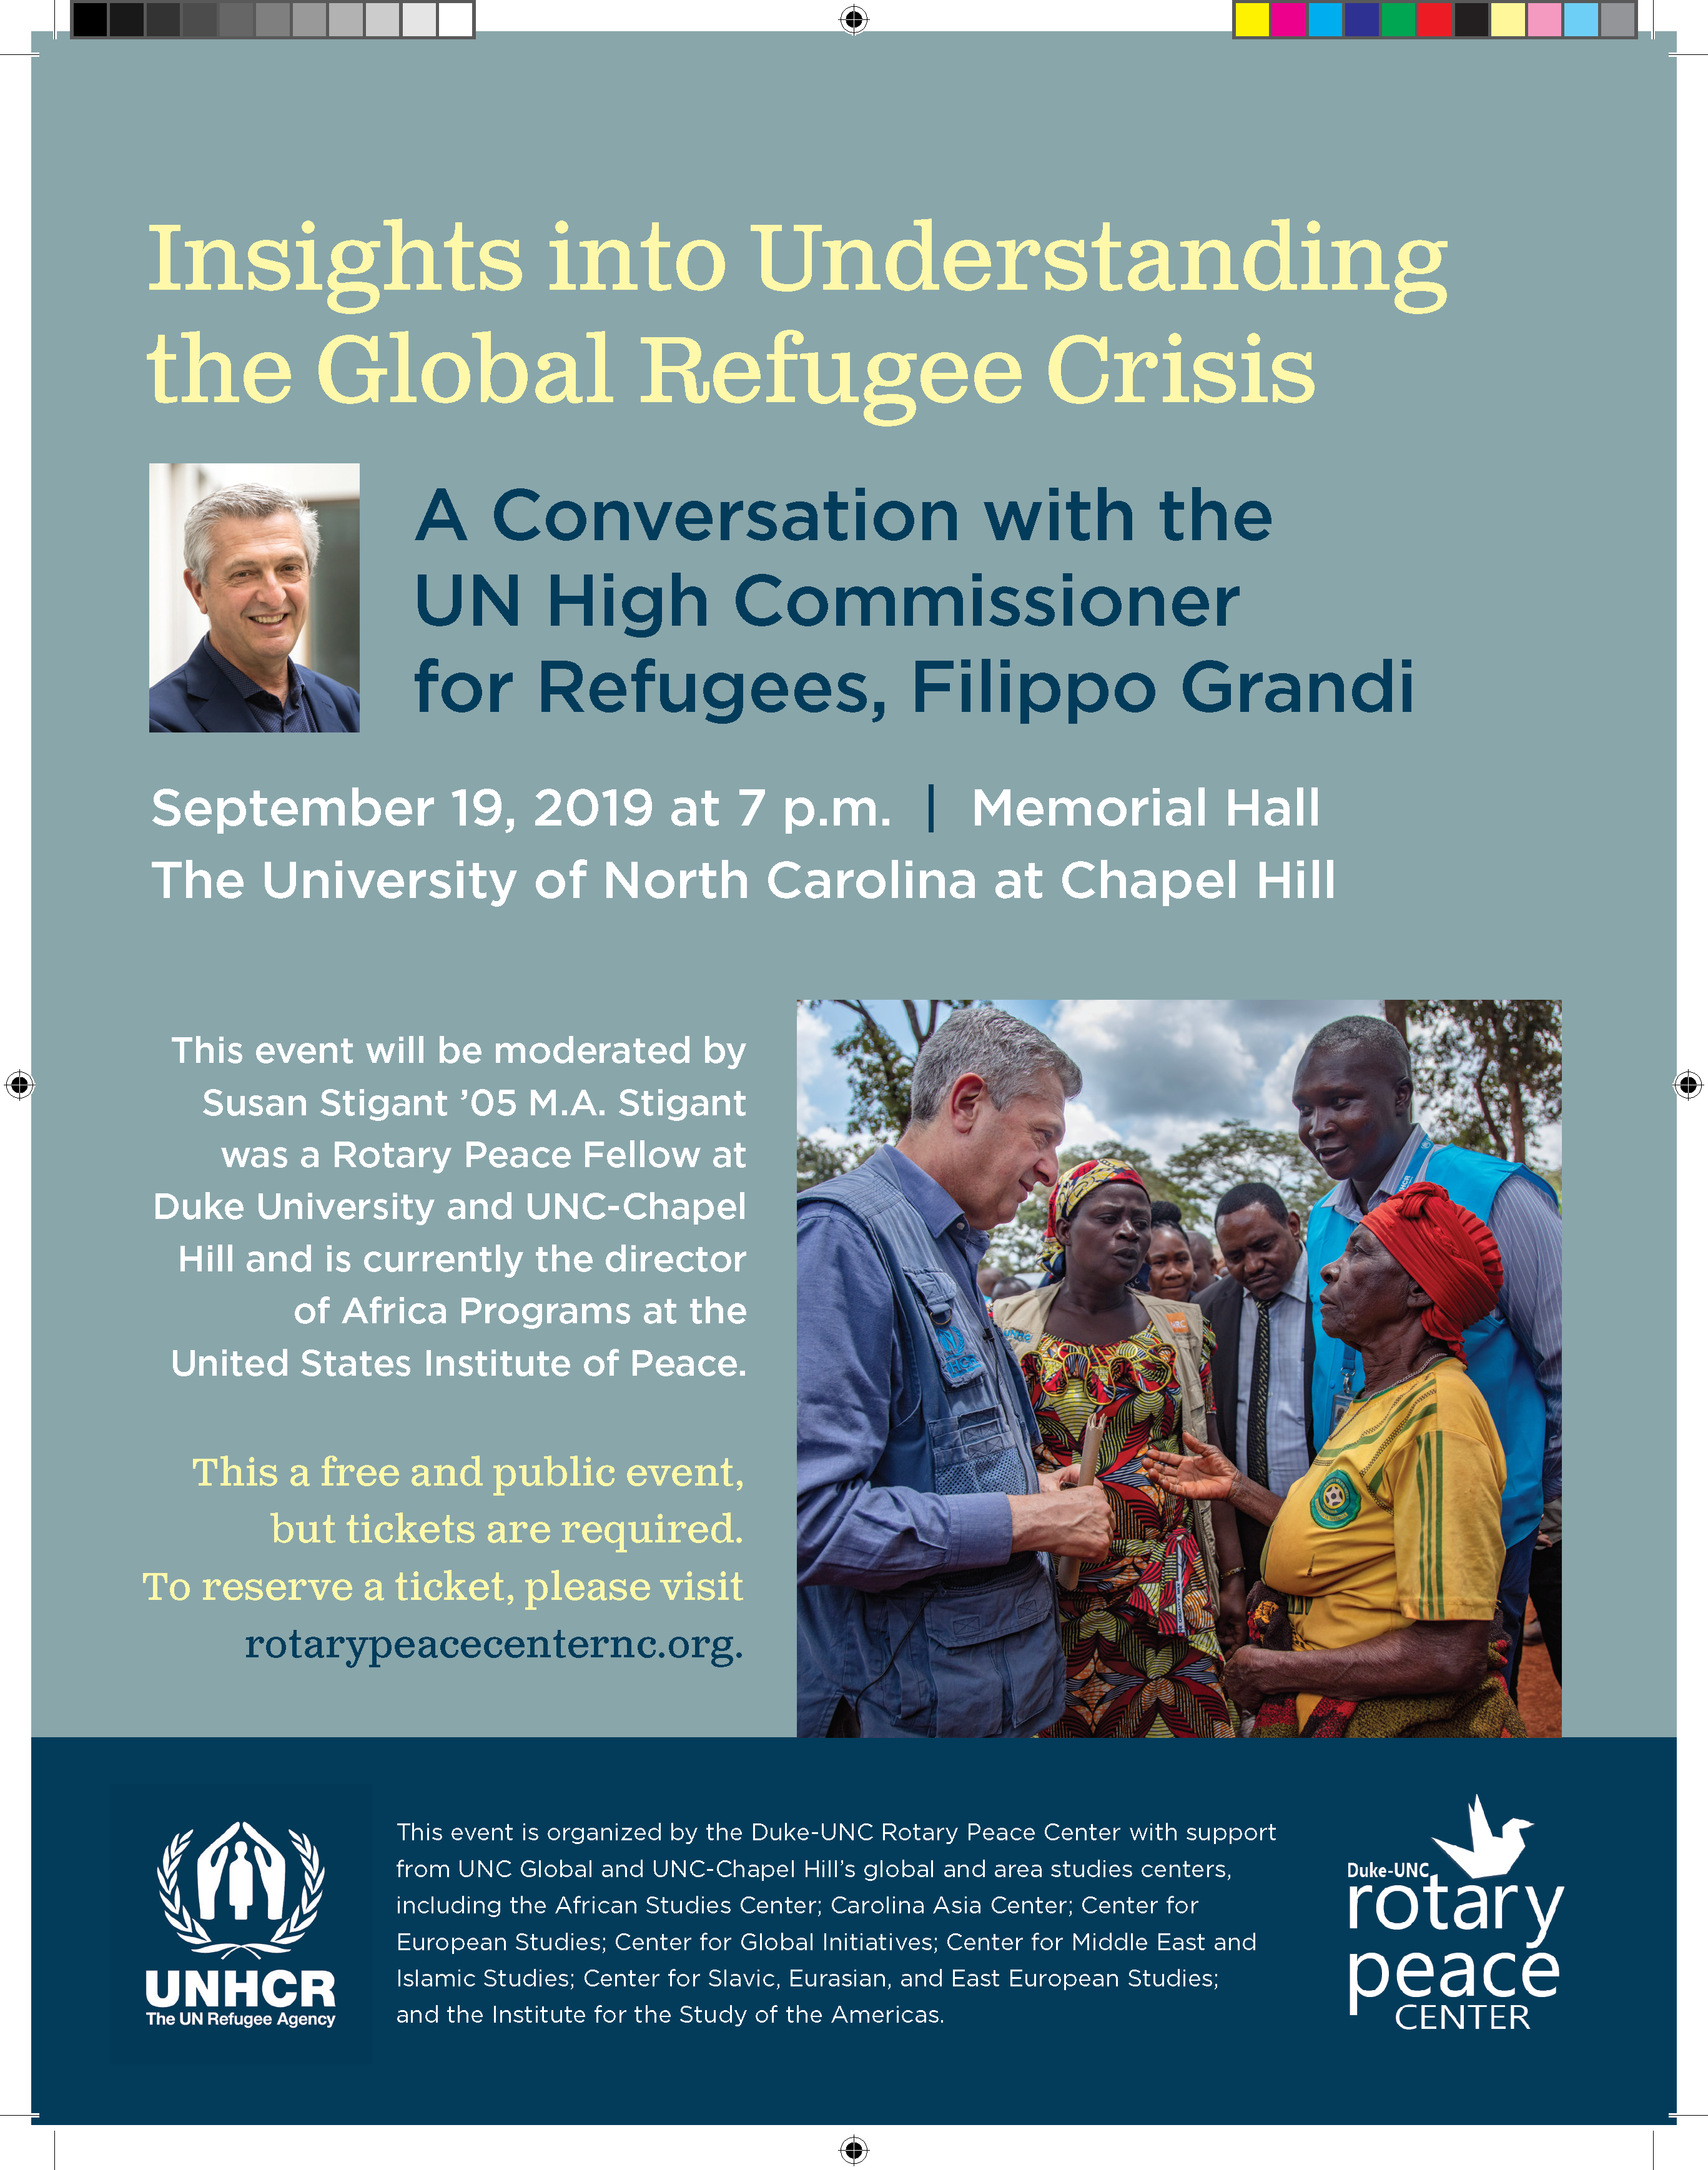 Insights into Understanding the Global Refugee Crisis: A Converstation with the UN High Commissioner for Refugees, Filippo Grandi